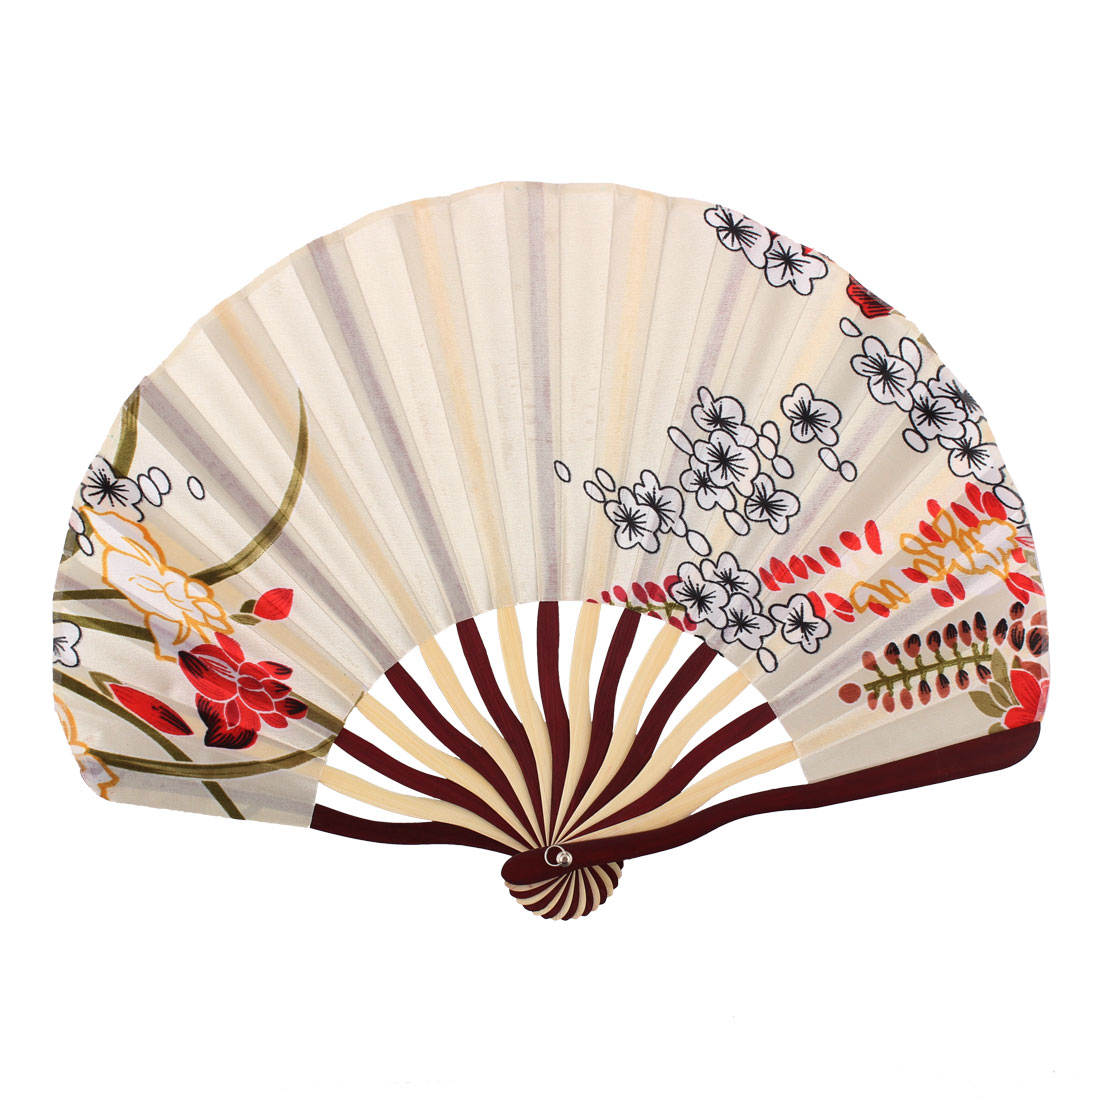 Lady Bamboo Frame Flower Pattern Dance Wedding Party Folding Hand Fan Beige